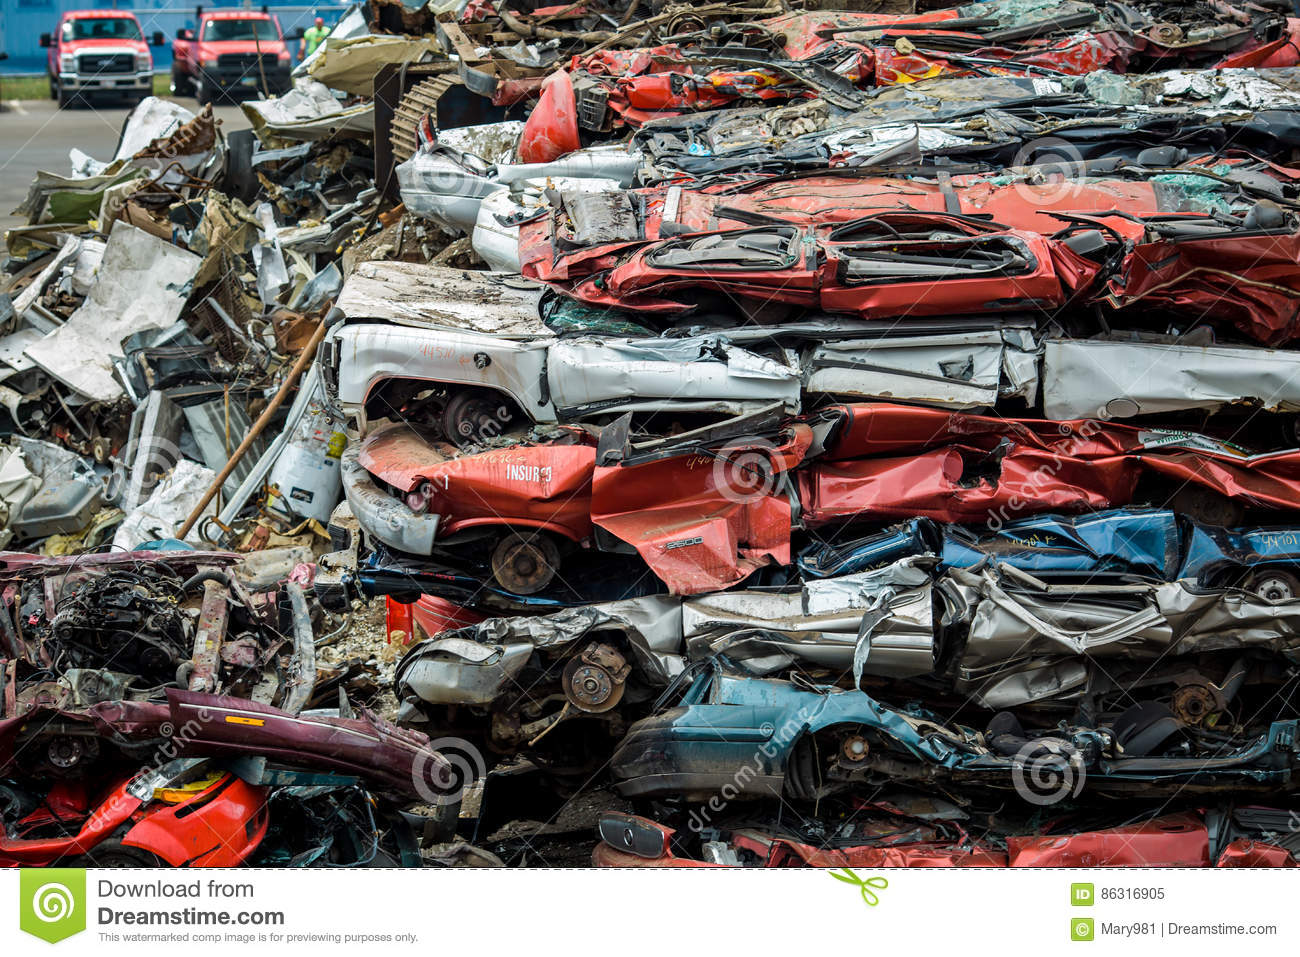 Auto junk yards close to me